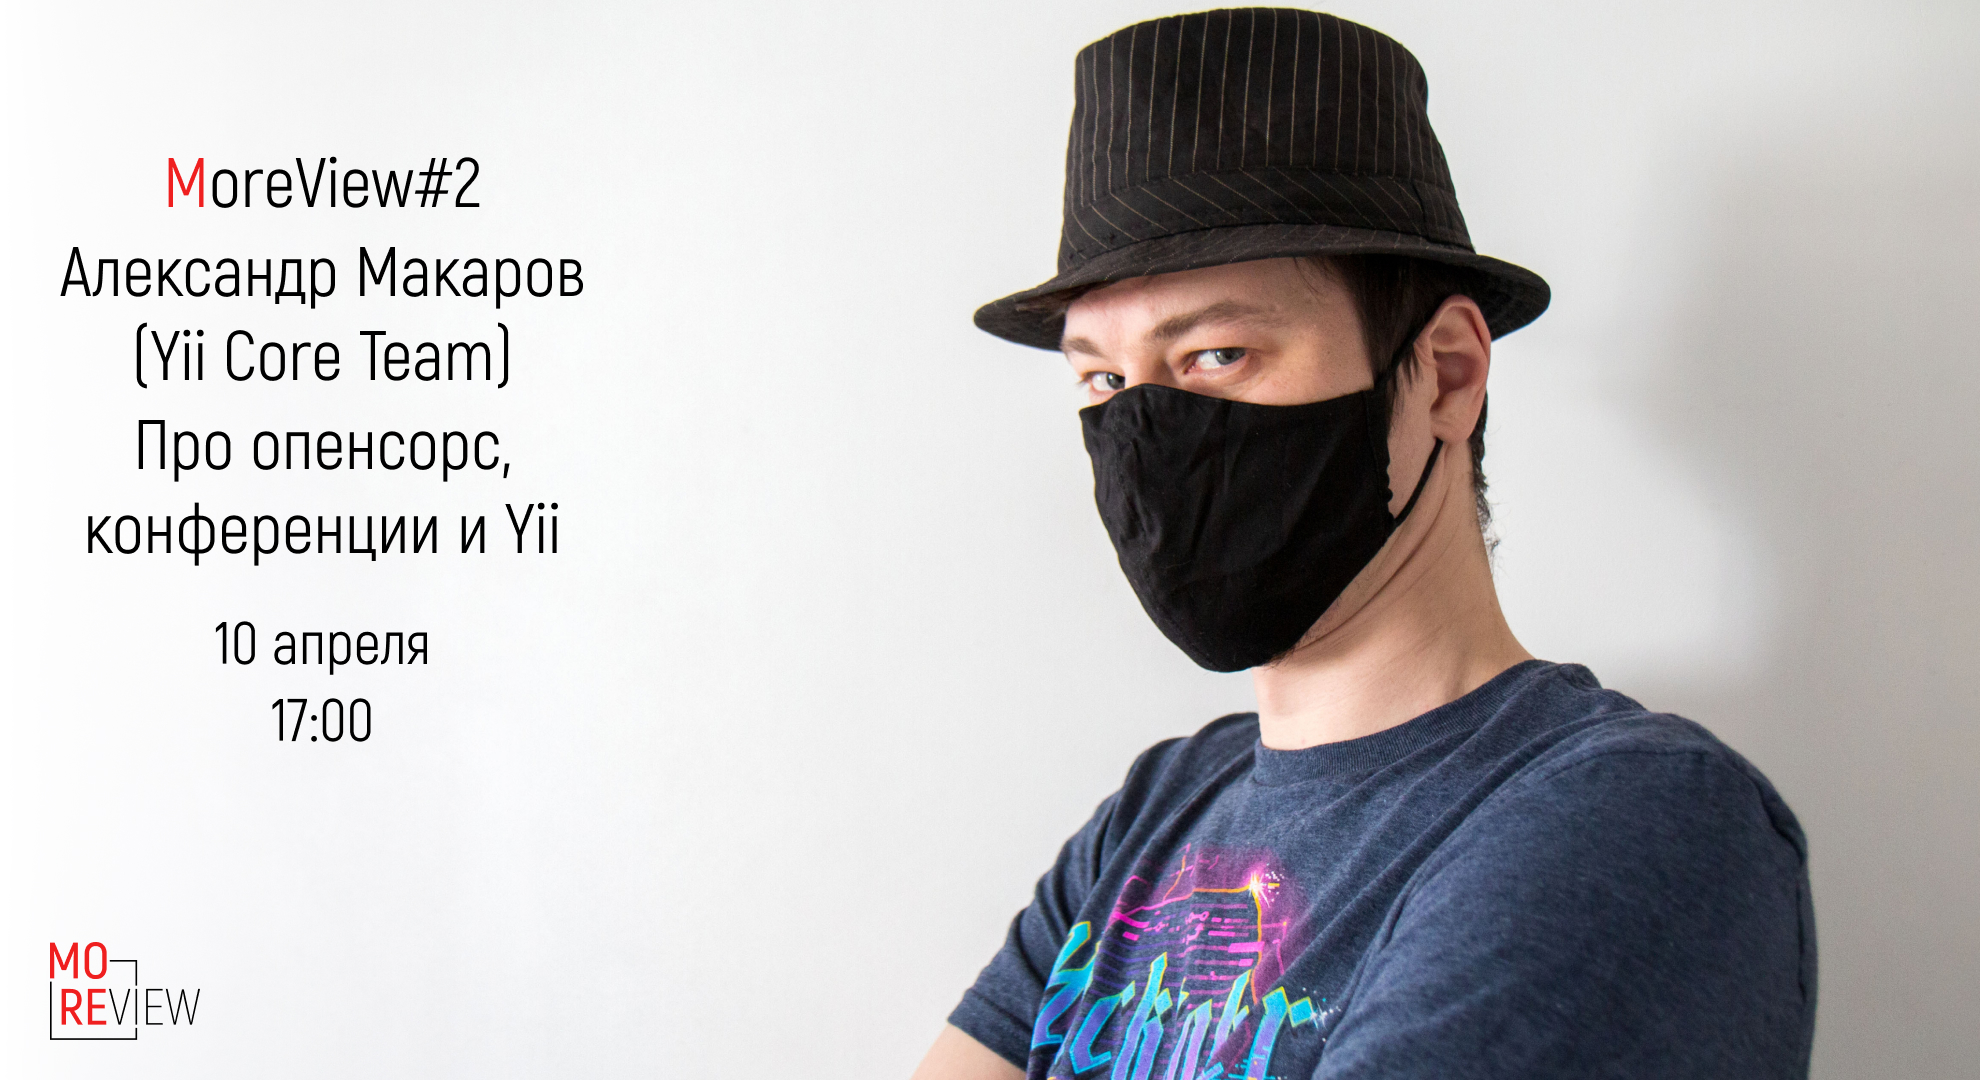 Interview with Alexander Makarov (Yii) about Opensource, conferences and Yii /Habr